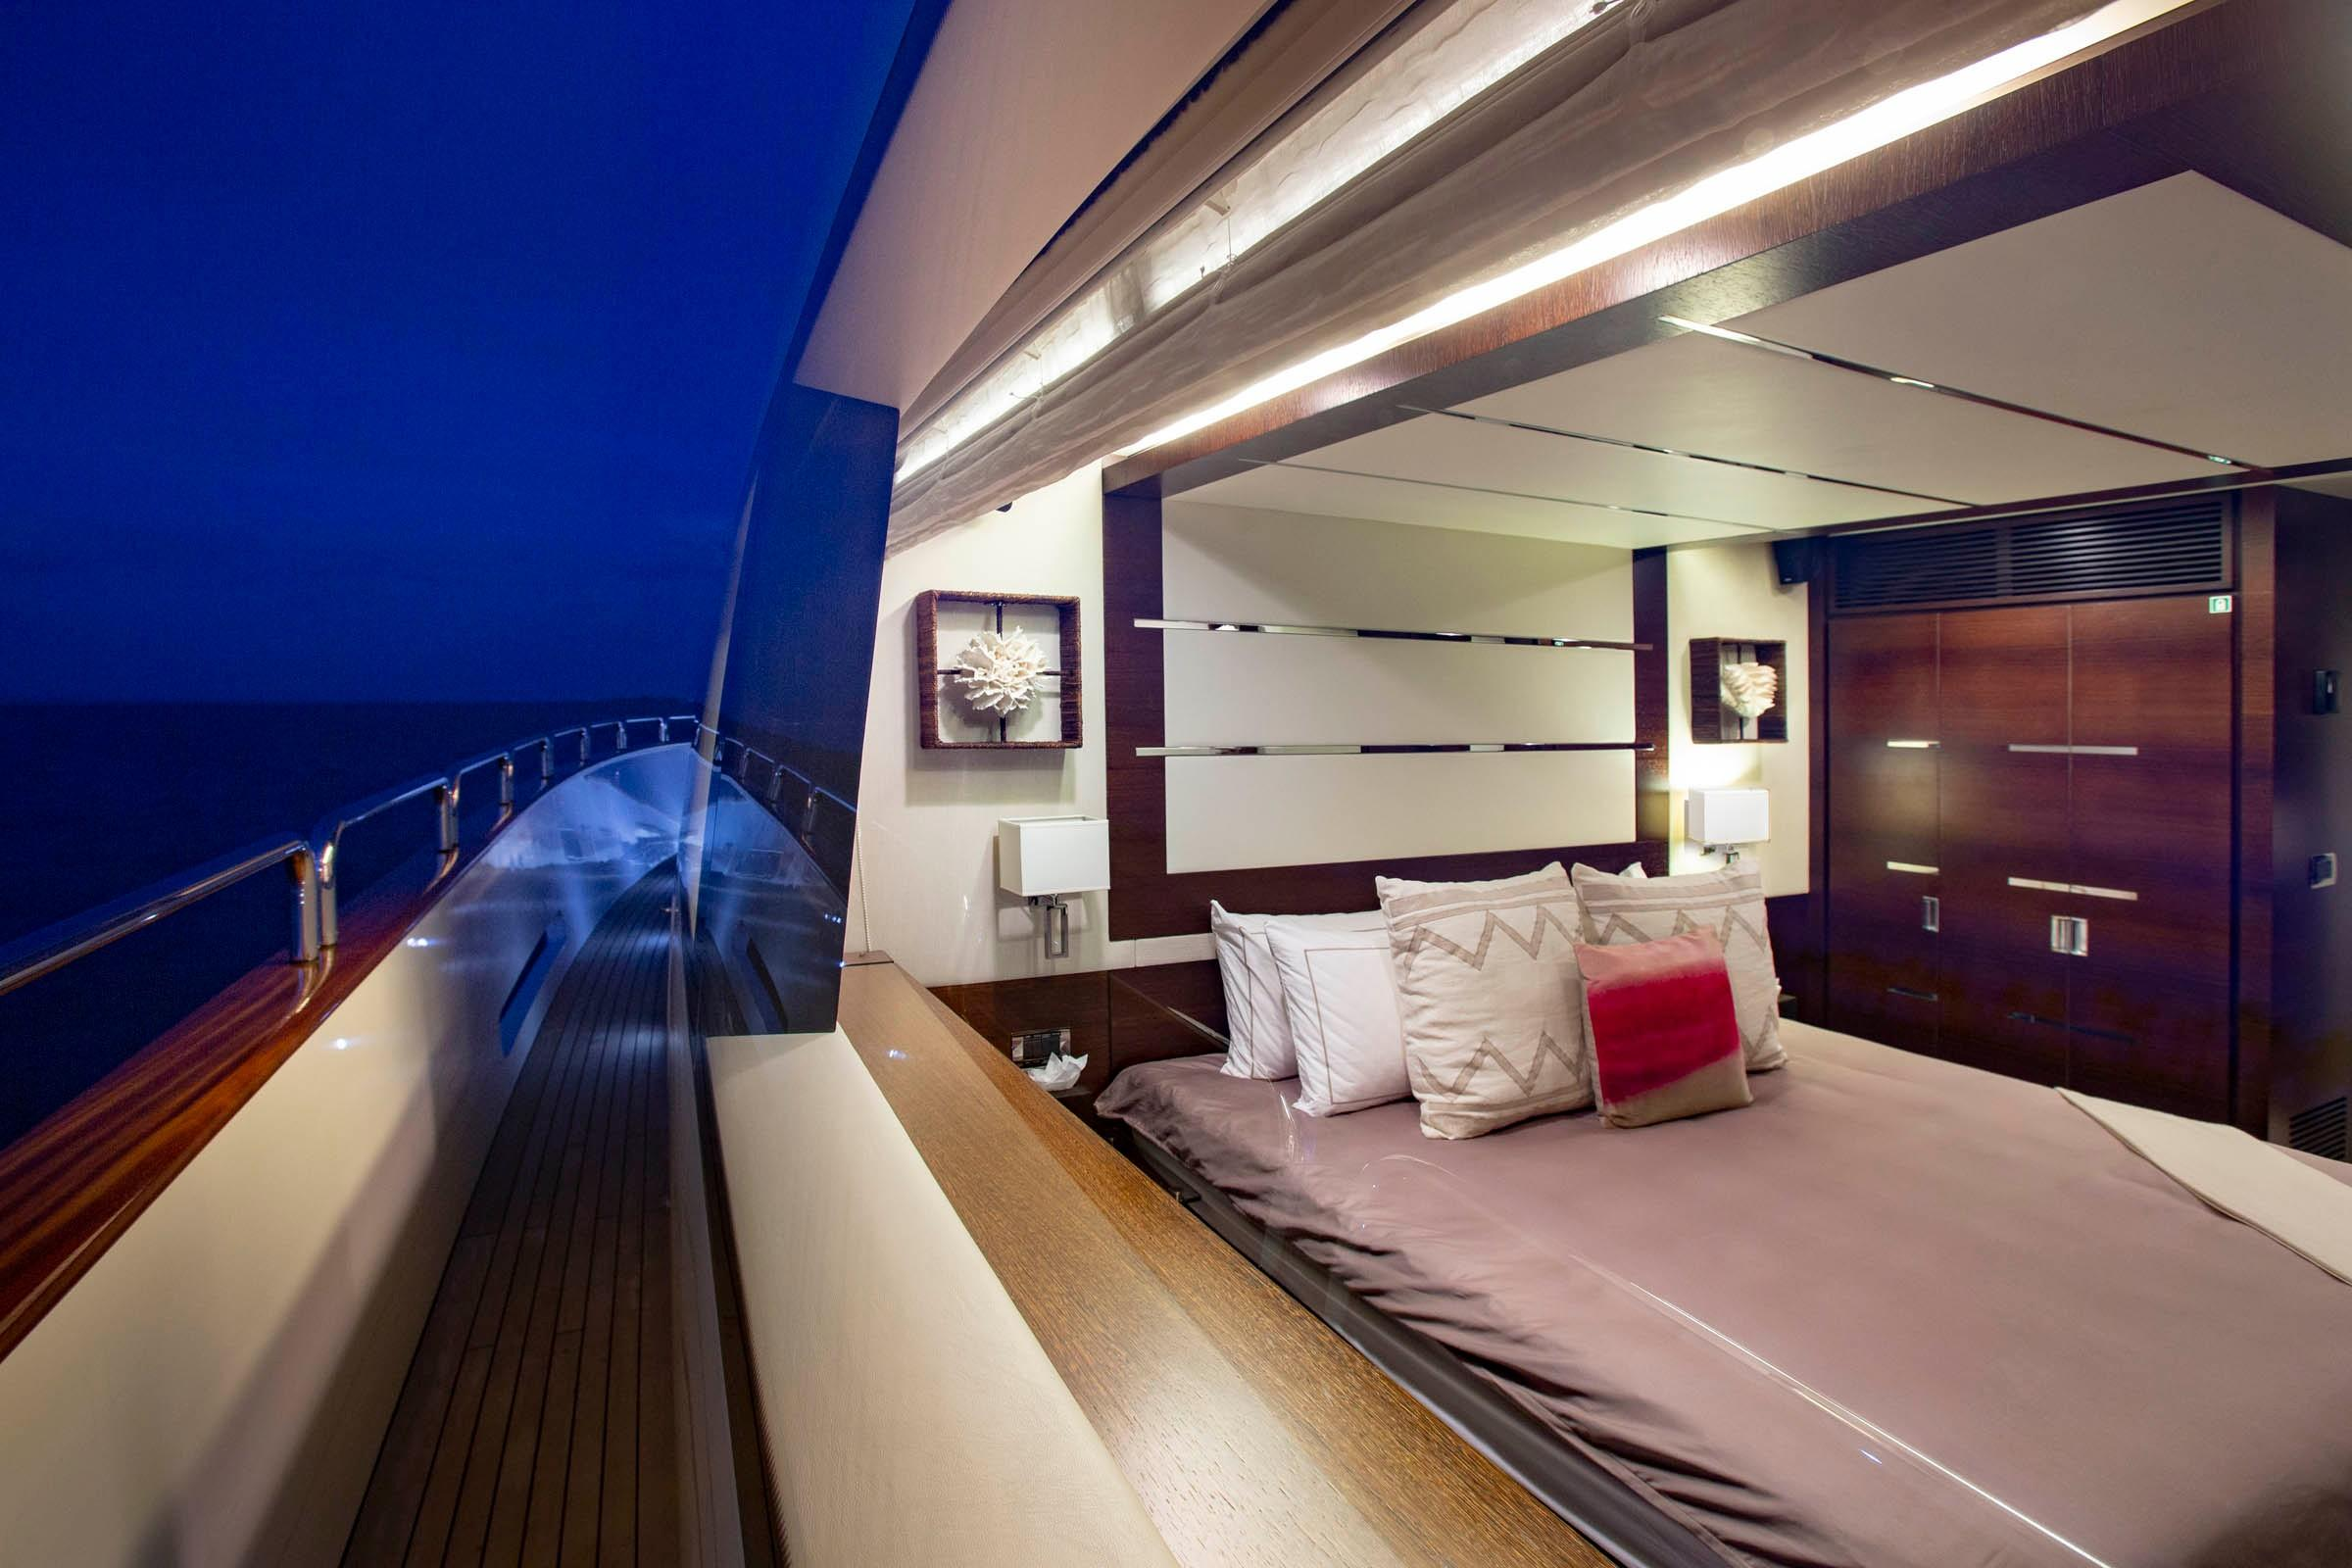 105 Azimut Main deck VIP from port side deck